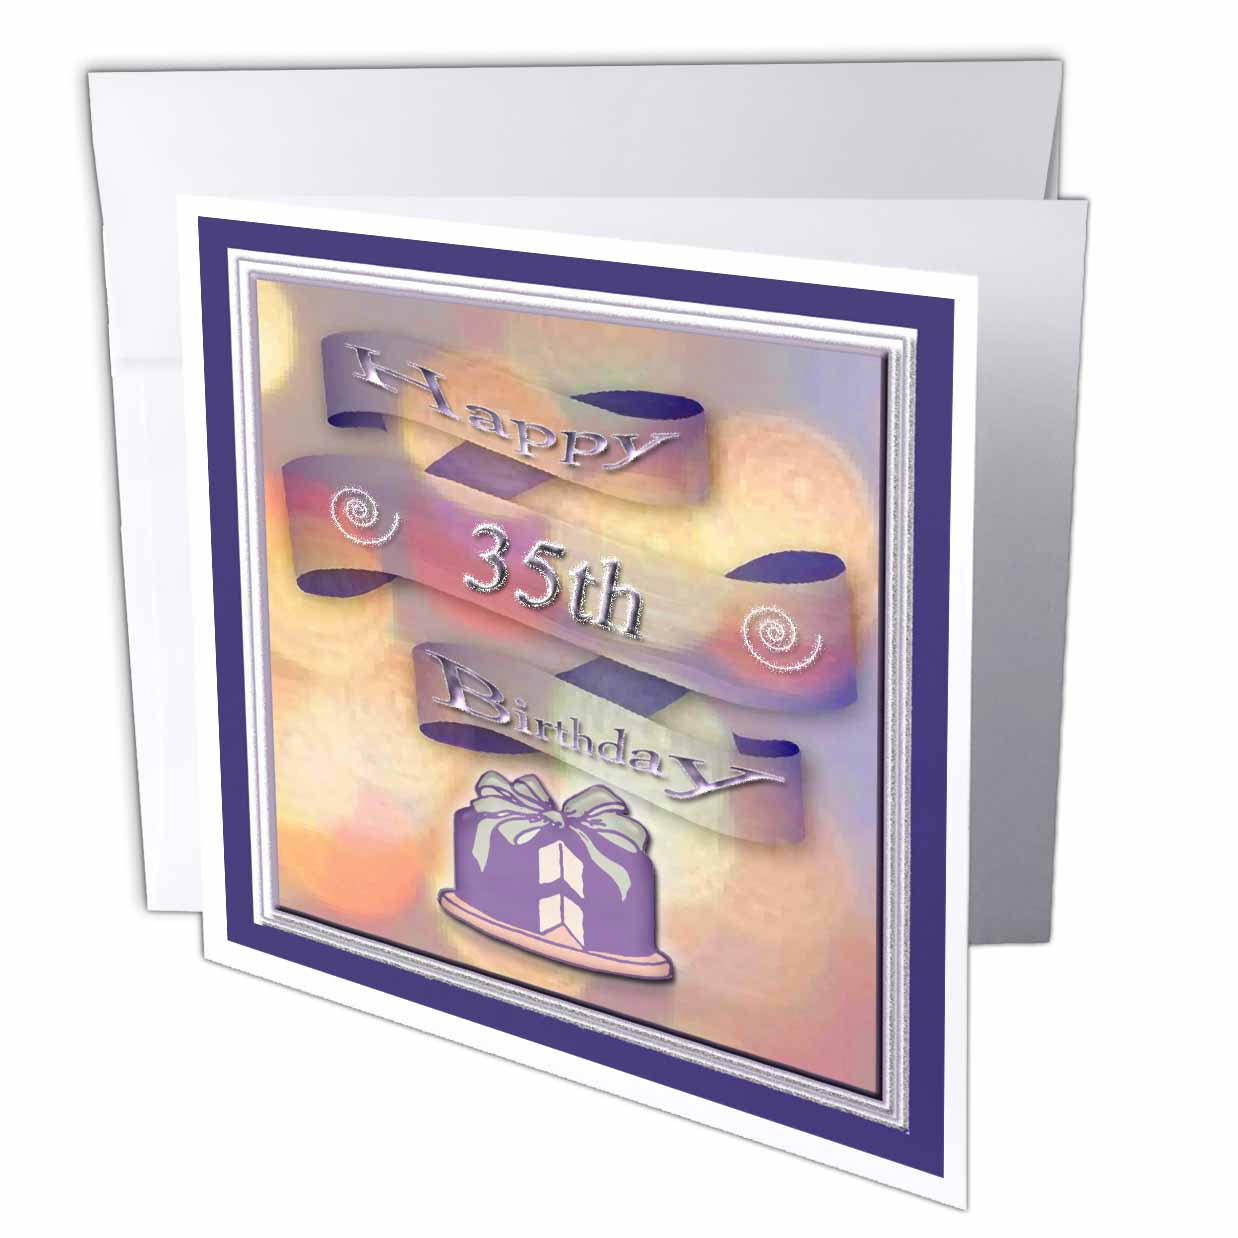 3dRose Ribbon and Cake Happy 35th Birthday, Greeting Card, 6 x 6 inches, single